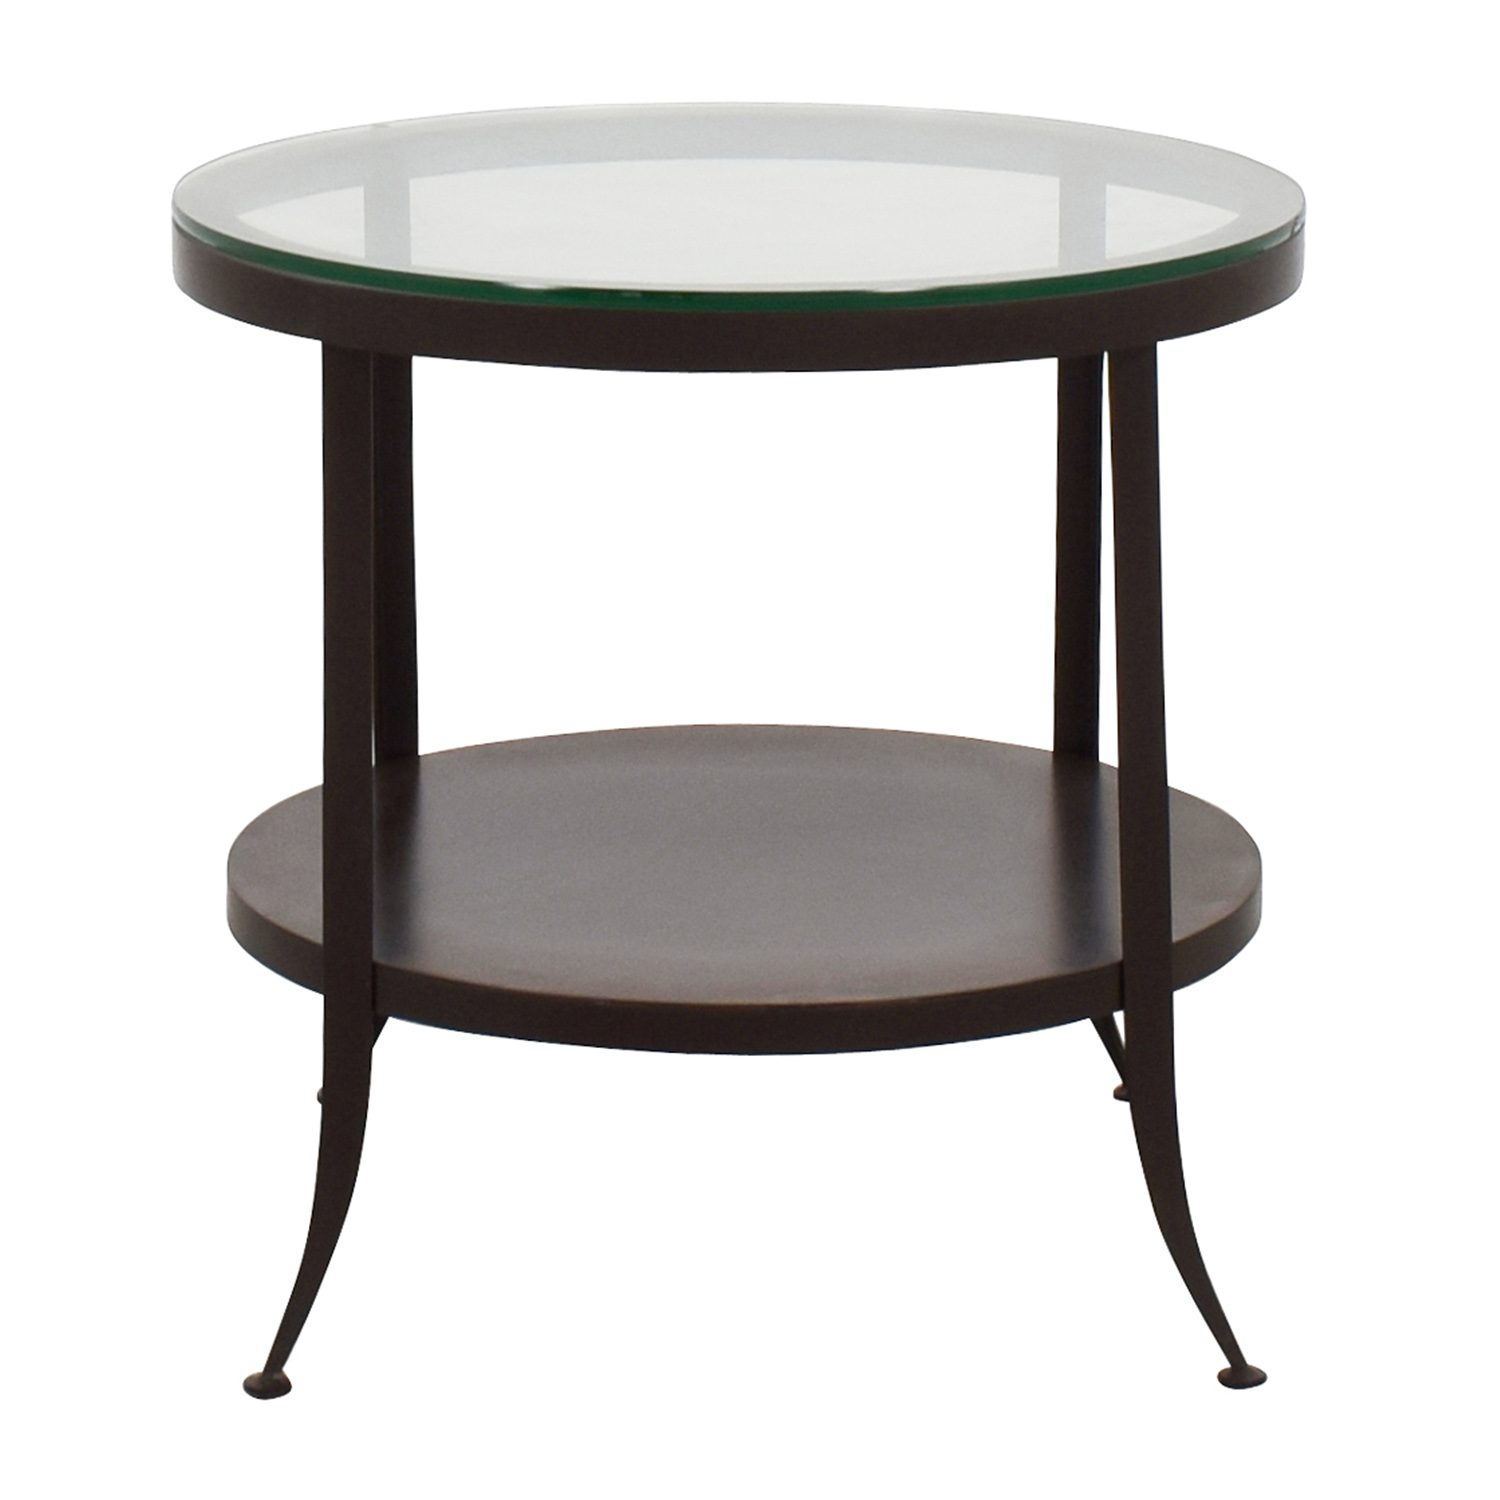 Crate and Barrel Crate & Barrel Round Glass Top End Table coupon